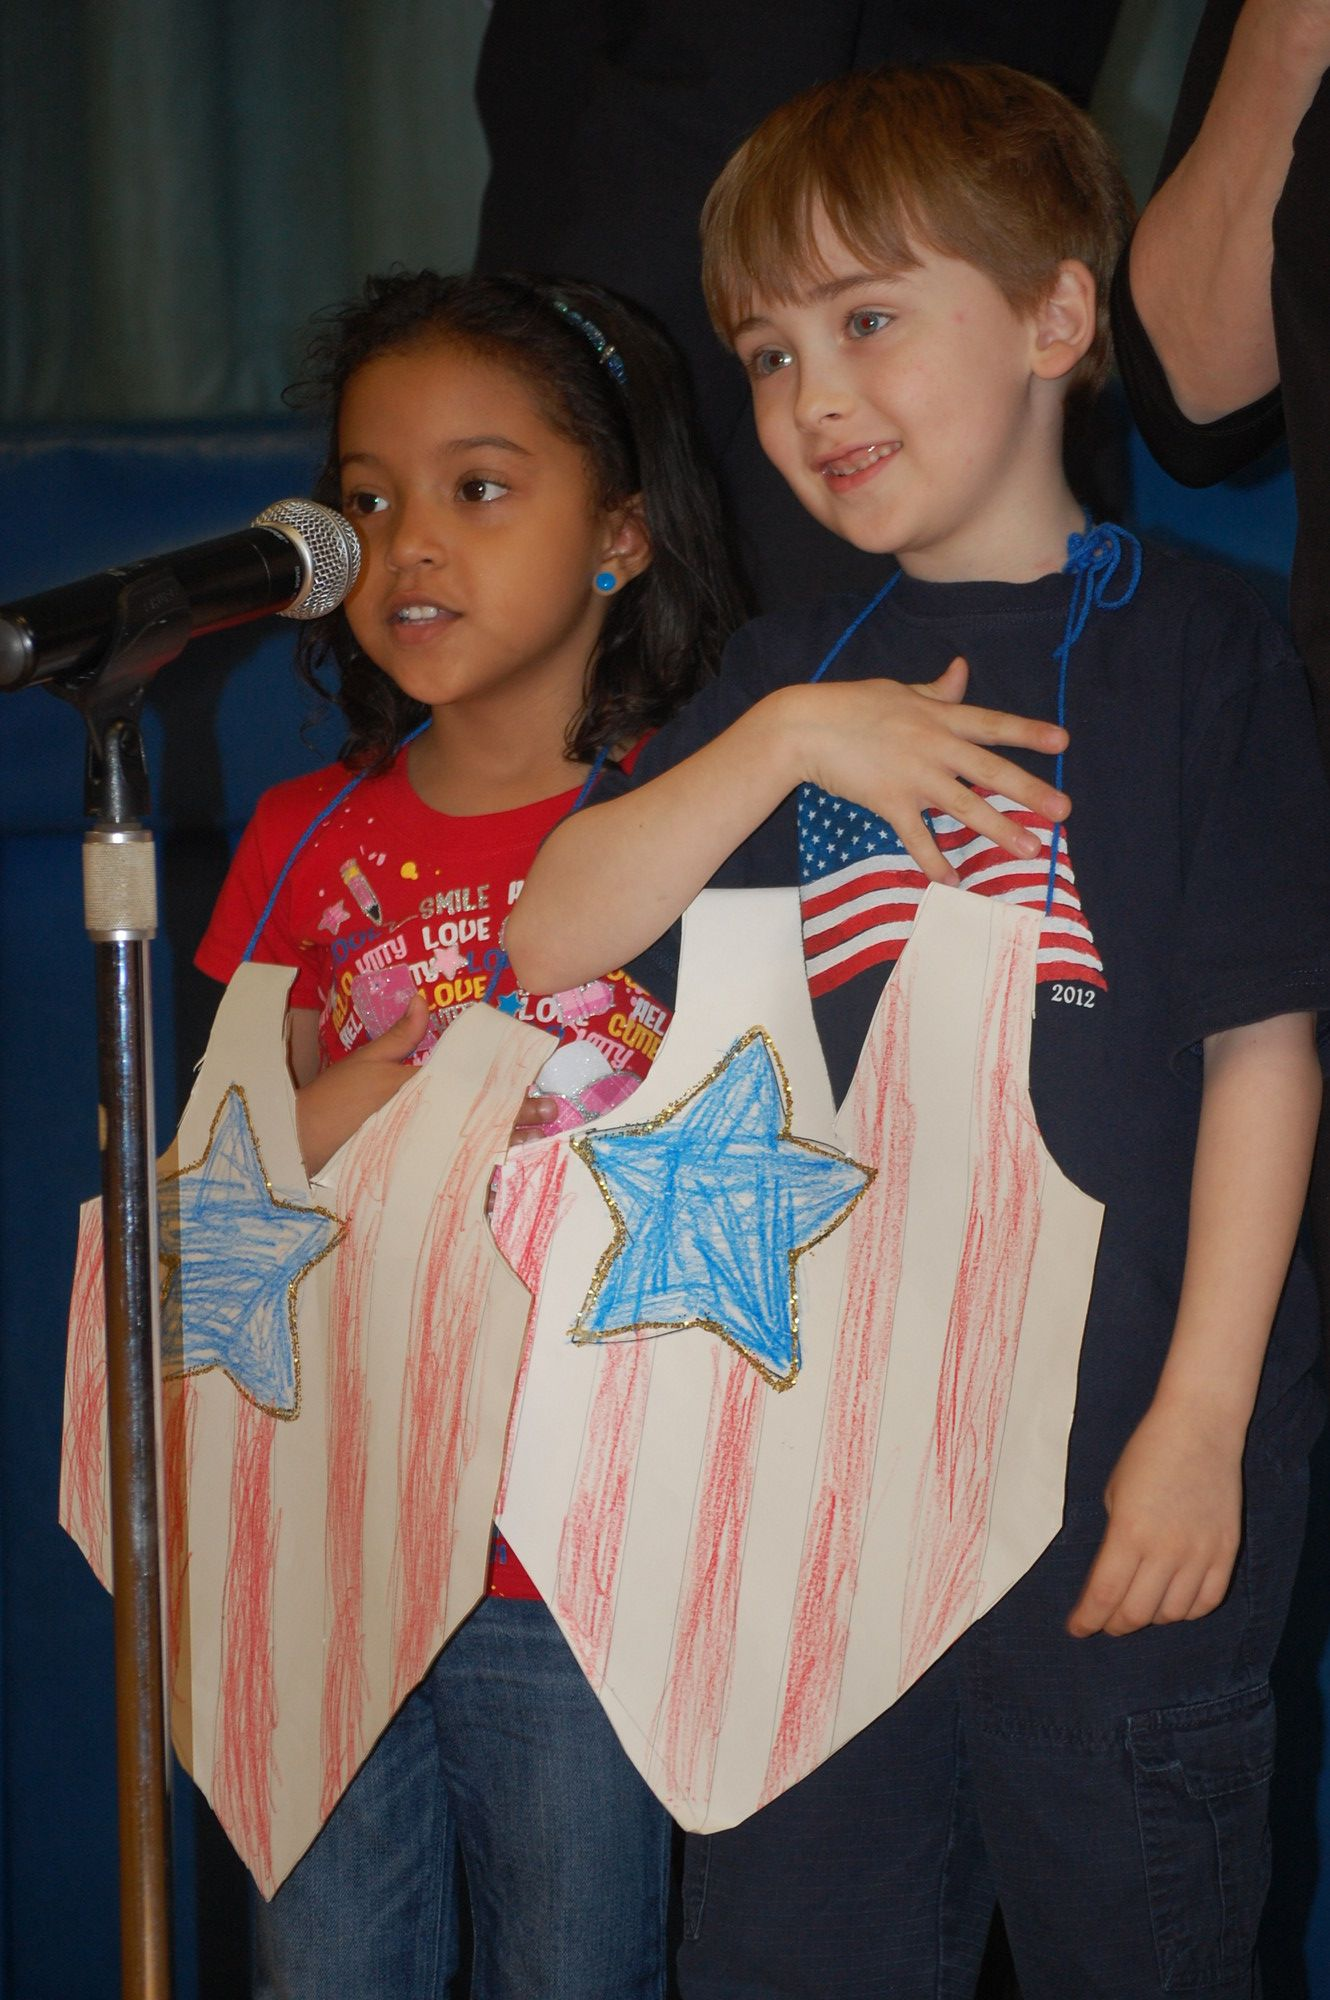 Patrick Biondolillo and Aliyah Frontin led the salute to the flag at the Carbonaro School on June 14.